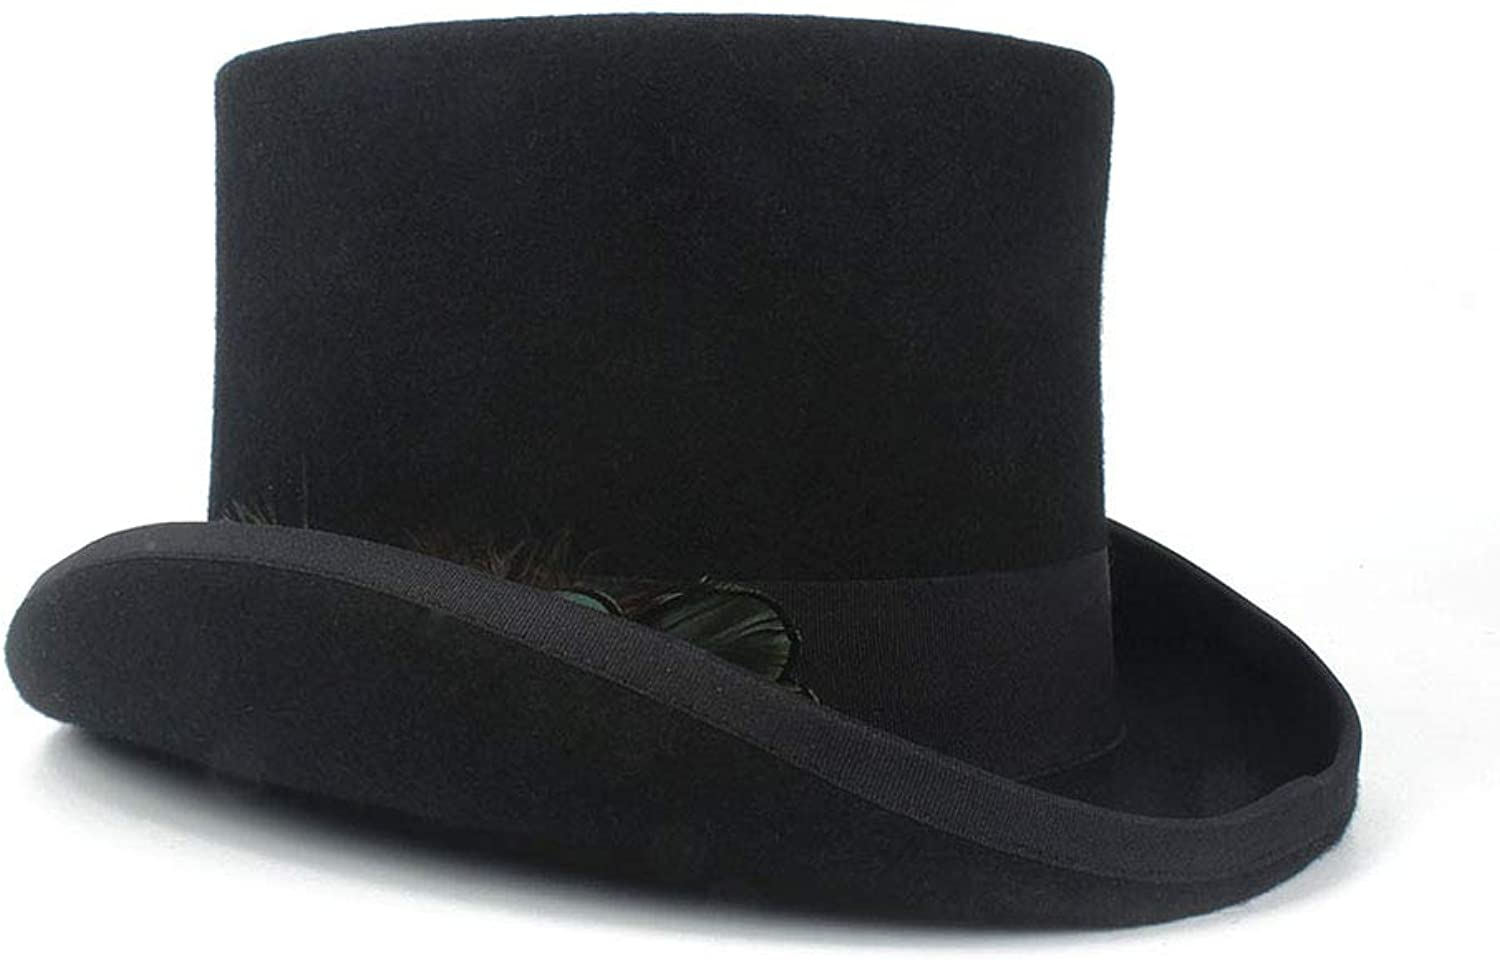 YUXUJ women's Top Hat Ladies Wool Fedora Magician Party Hat 4Size S M L XL 13.5 Cm (5.3 Inch)